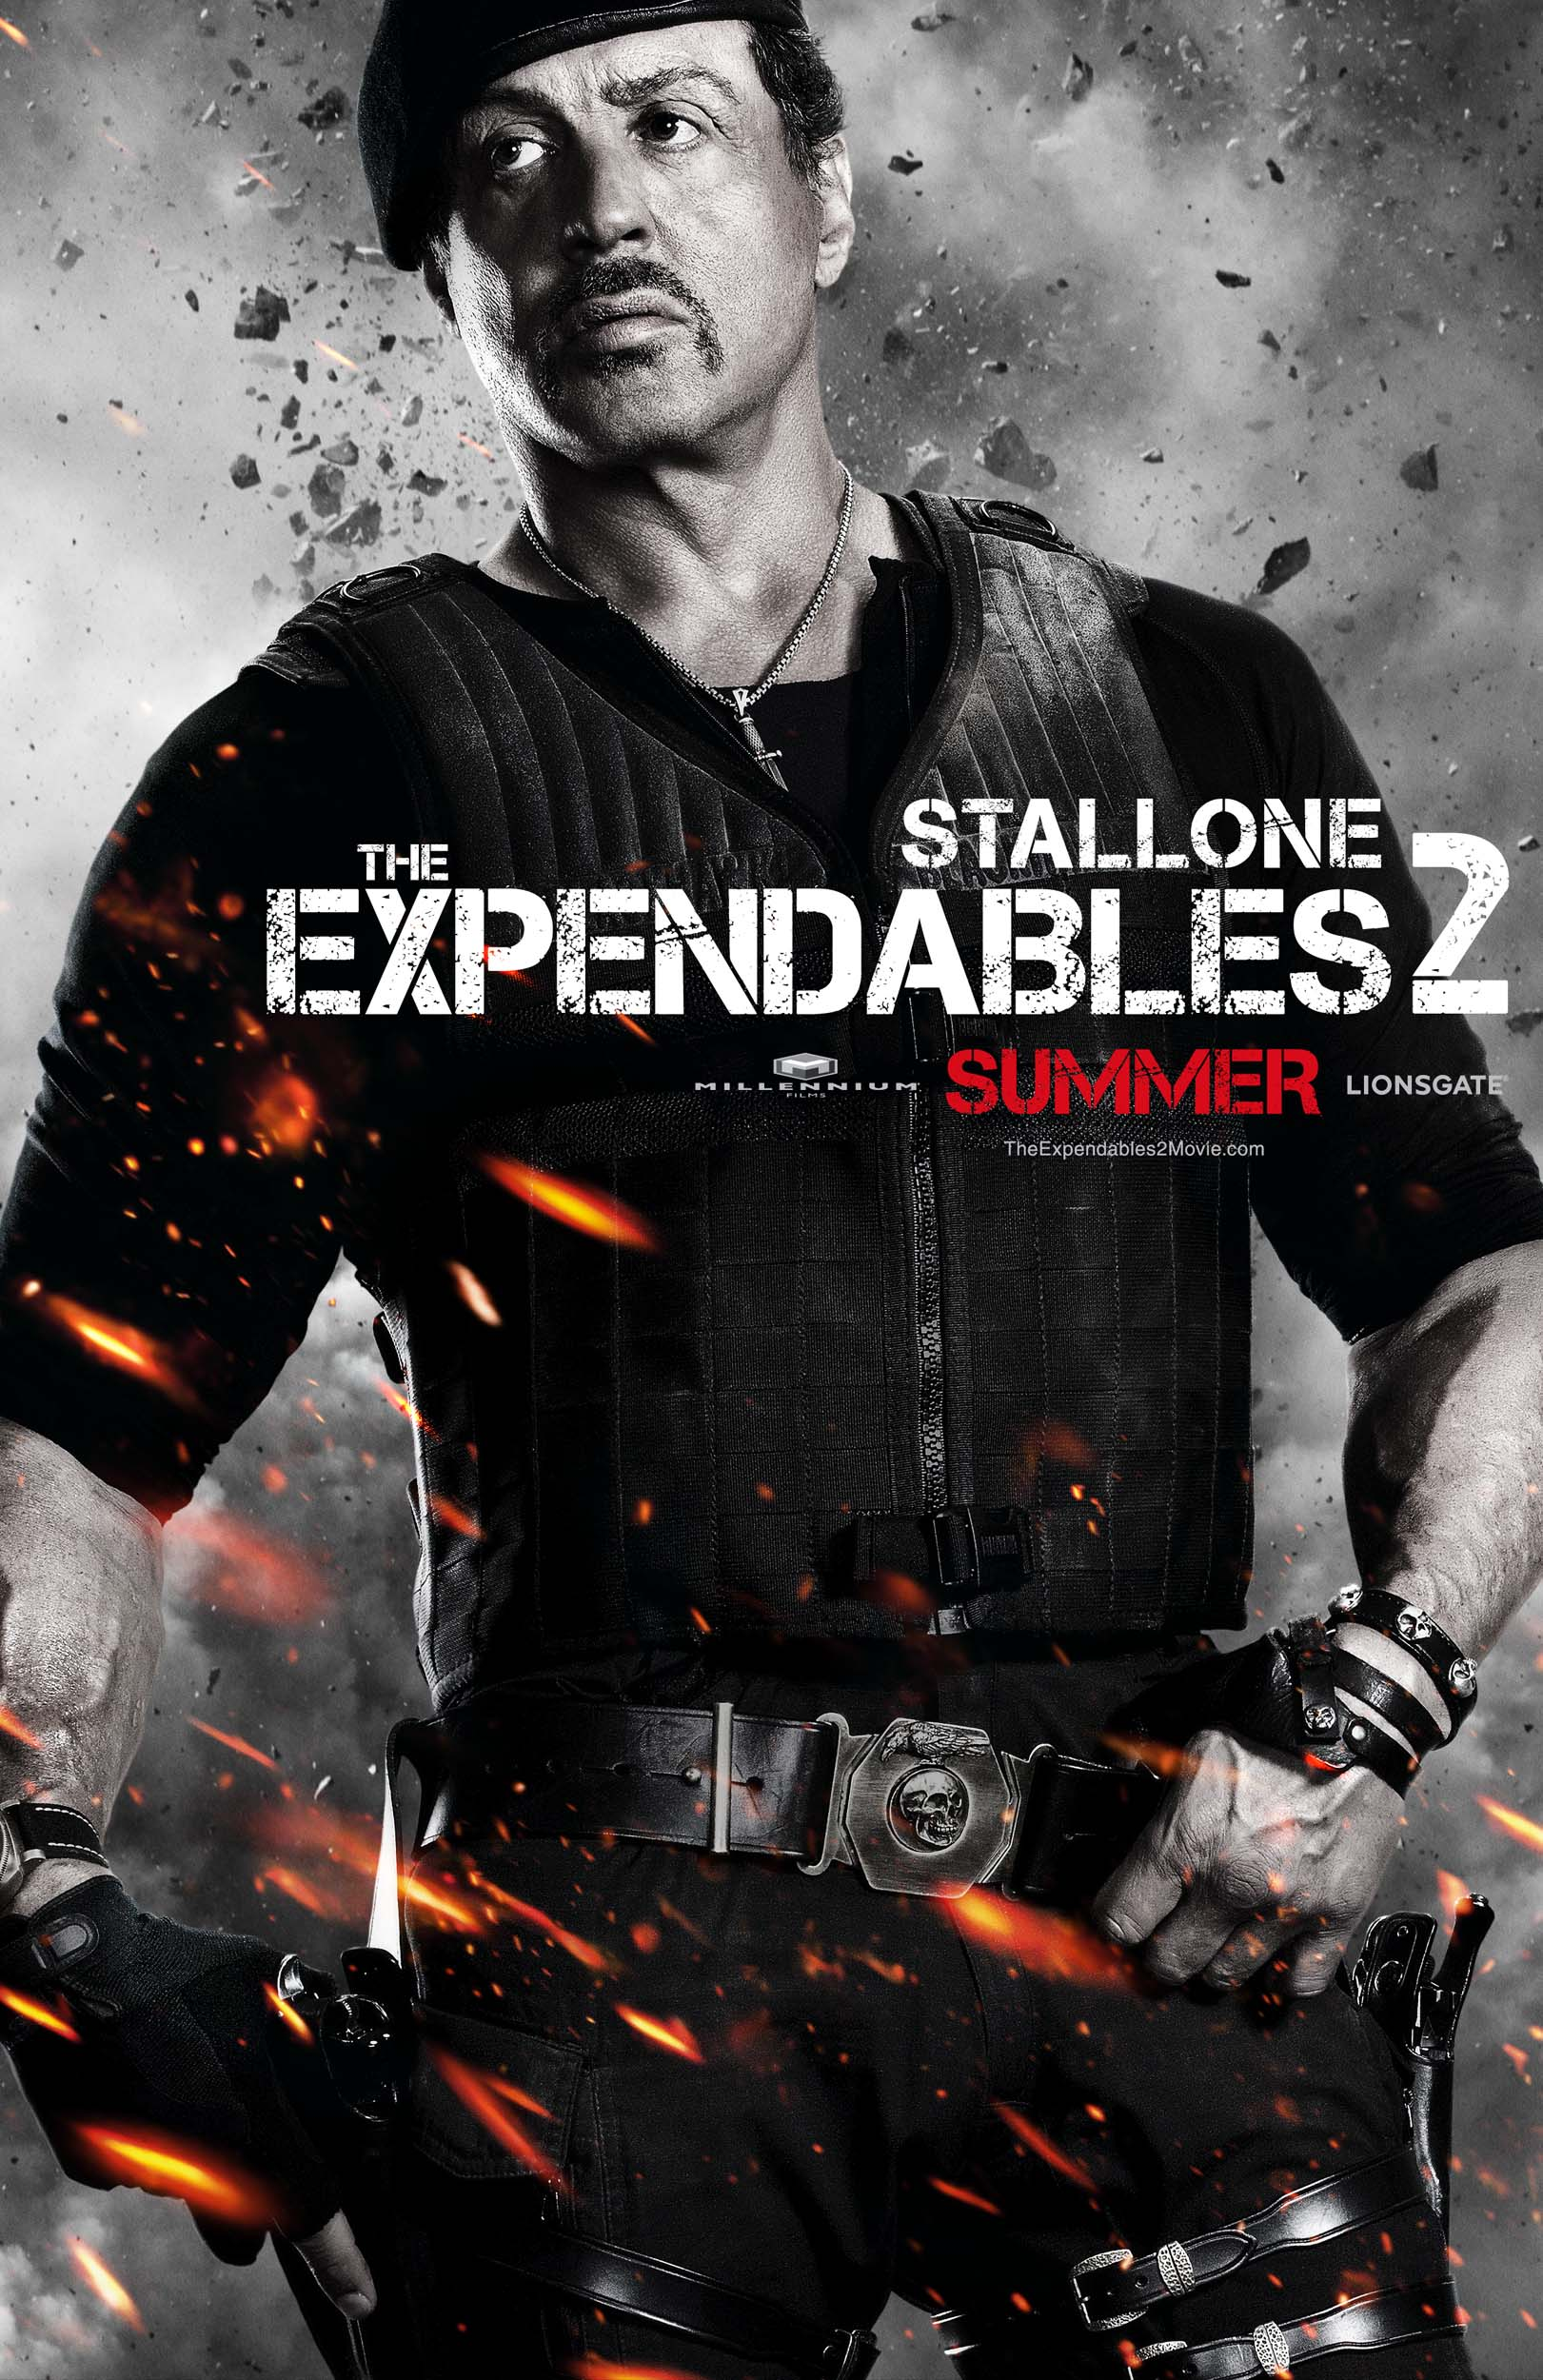 The Expendables 2 – Posters | Reggie's Take.com